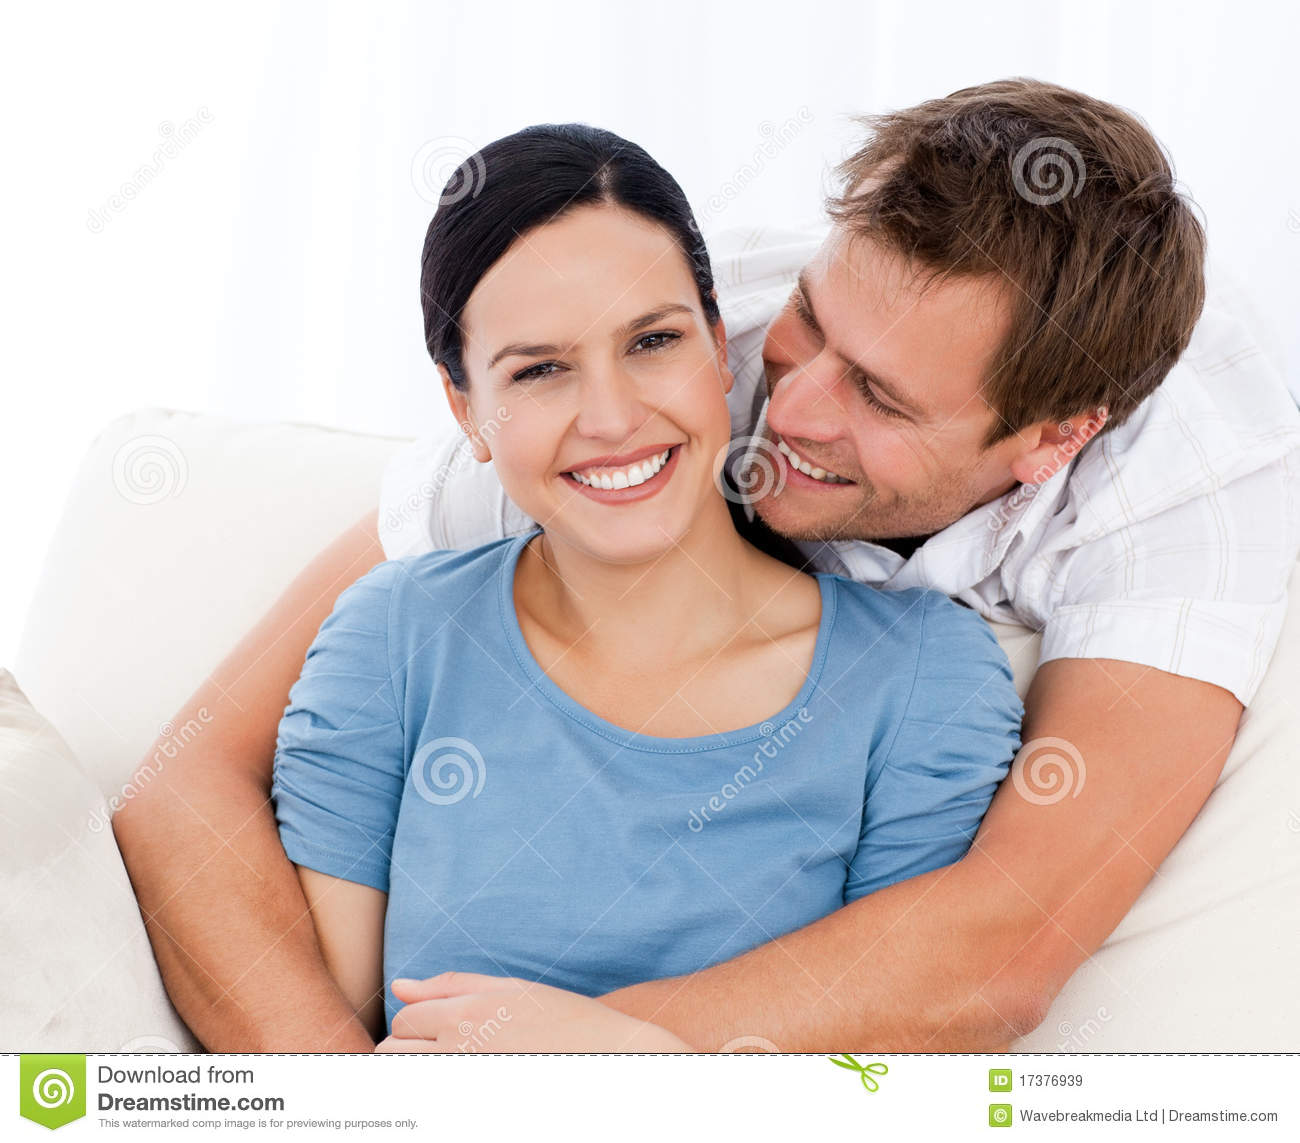 Passionate man hugging his girlfriend